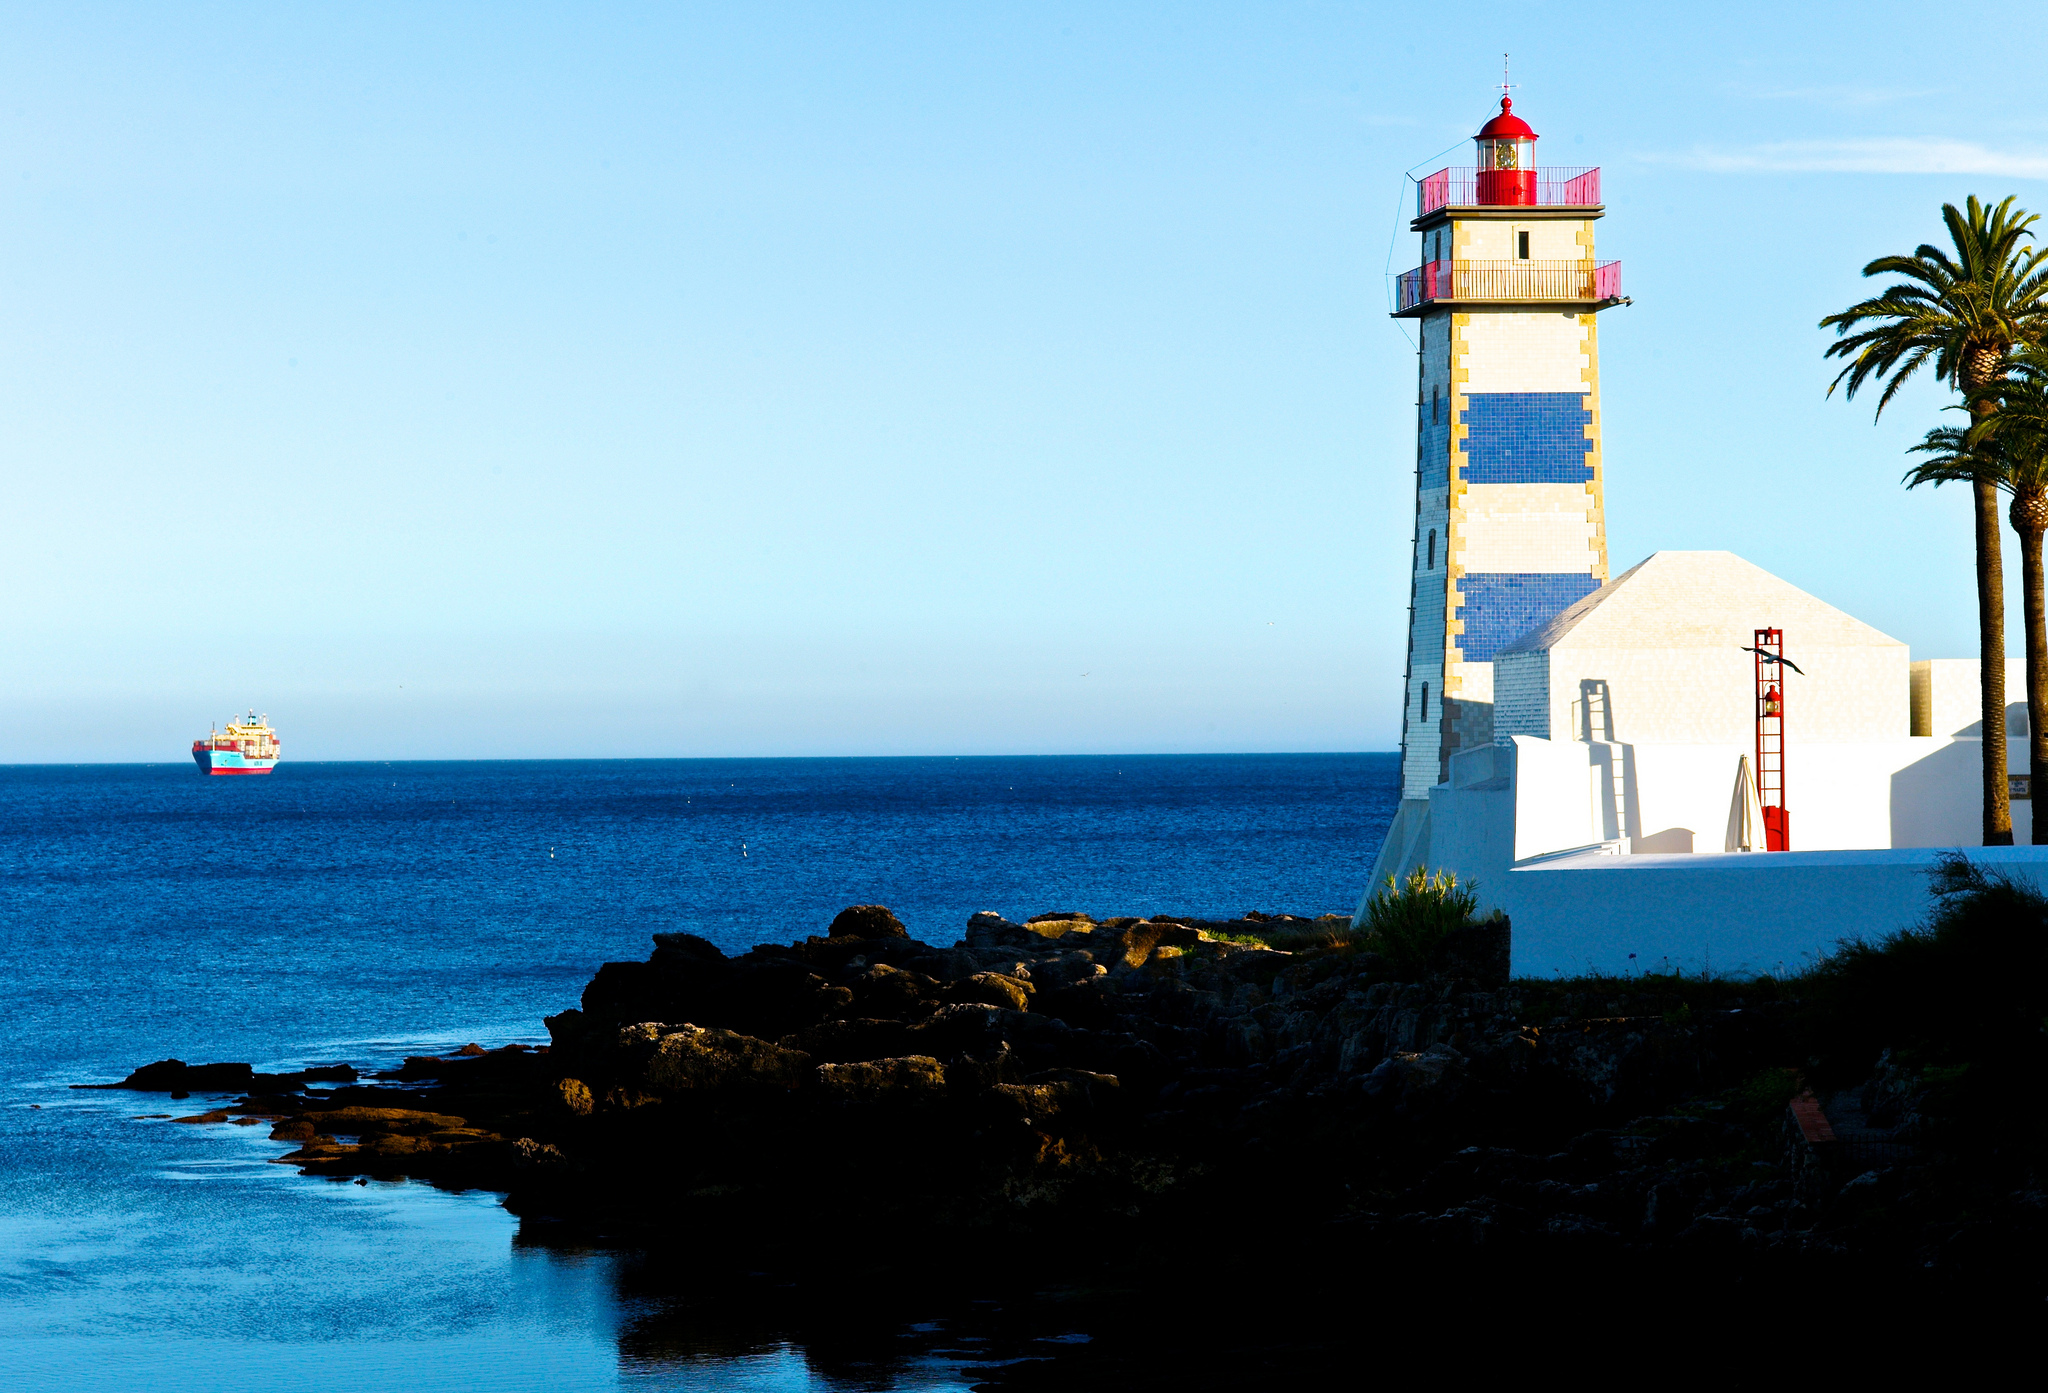 Cascais, Portugal - one of the green destinations to visit this year